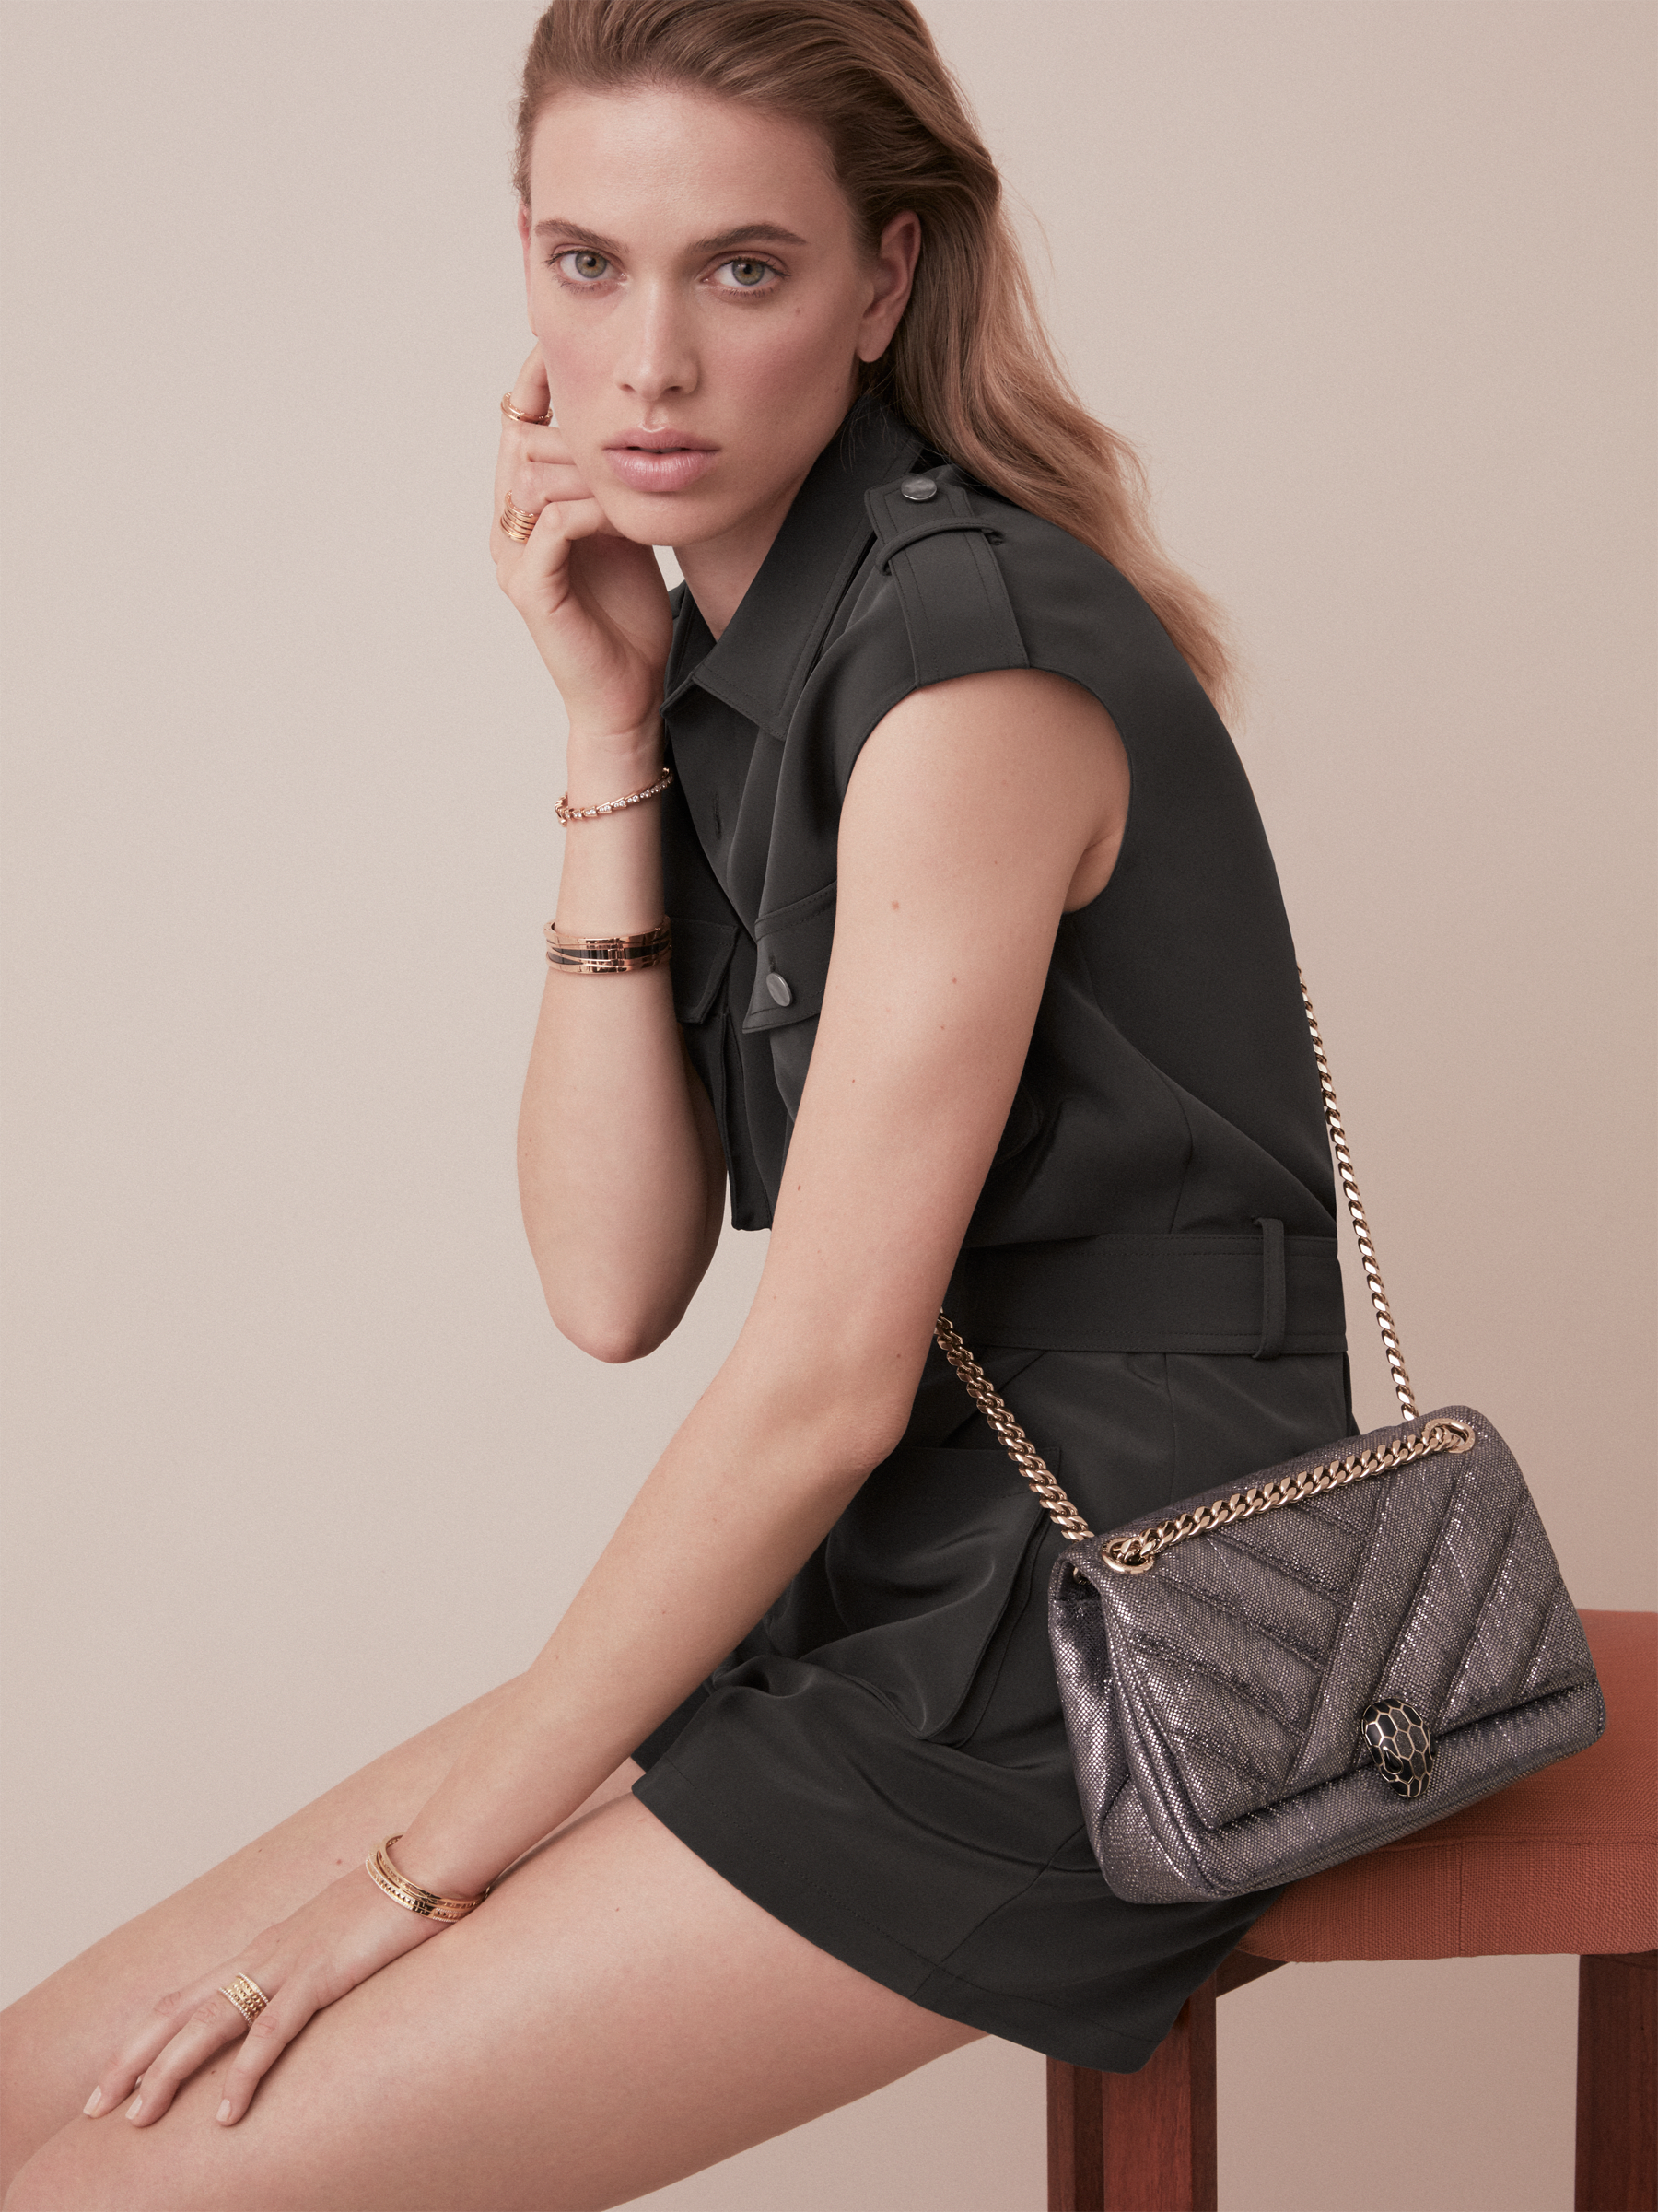 Serpenti Cabochon shoulder bag in soft matelassé charcoal diamond metallic karung skin with graphic motif. Snakehead closure in light gold plated brass decorated with matte black and glitter charcoal diamond enamel, and black onyx eyes. 288617 image 5